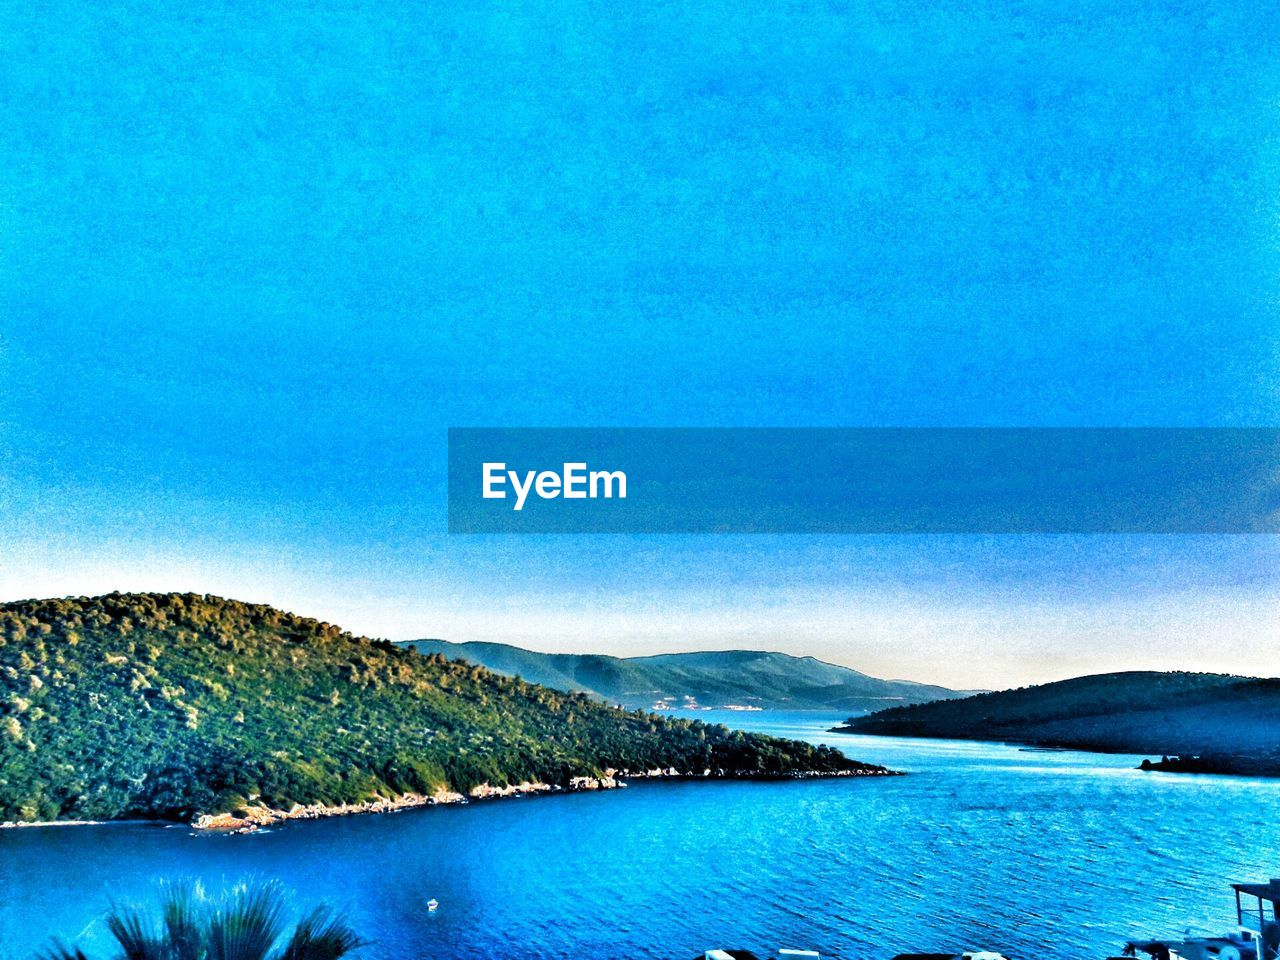 scenics, tranquil scene, blue, beauty in nature, tranquility, nature, water, no people, lake, outdoors, mountain, day, clear sky, waterfront, sky, view into land